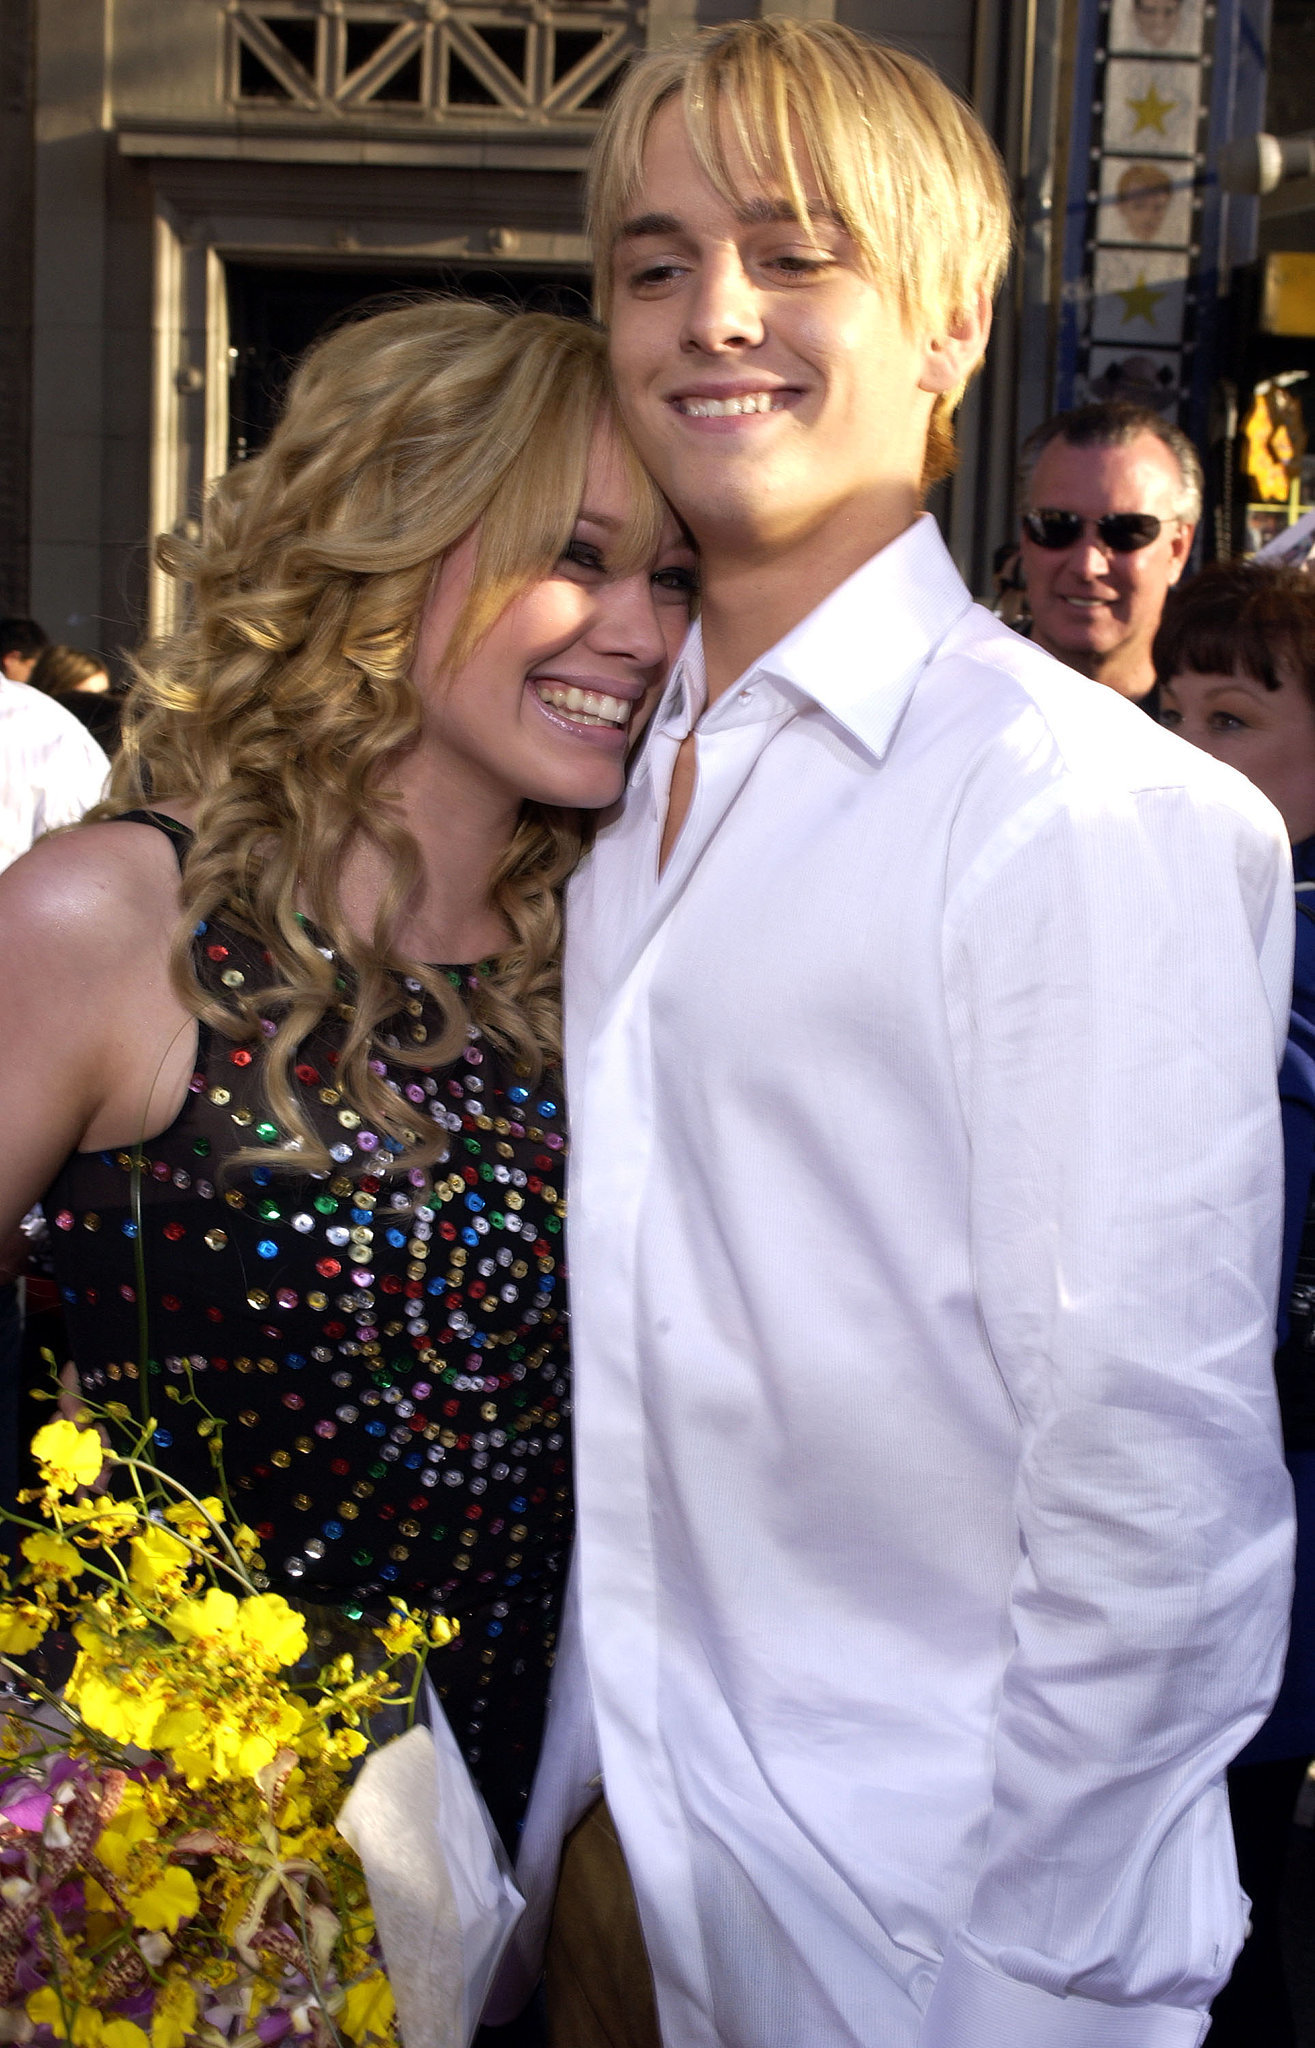 In April 2003, Aaron surprised her with flowers at the premiere of The Lizzie McGuire Movie.